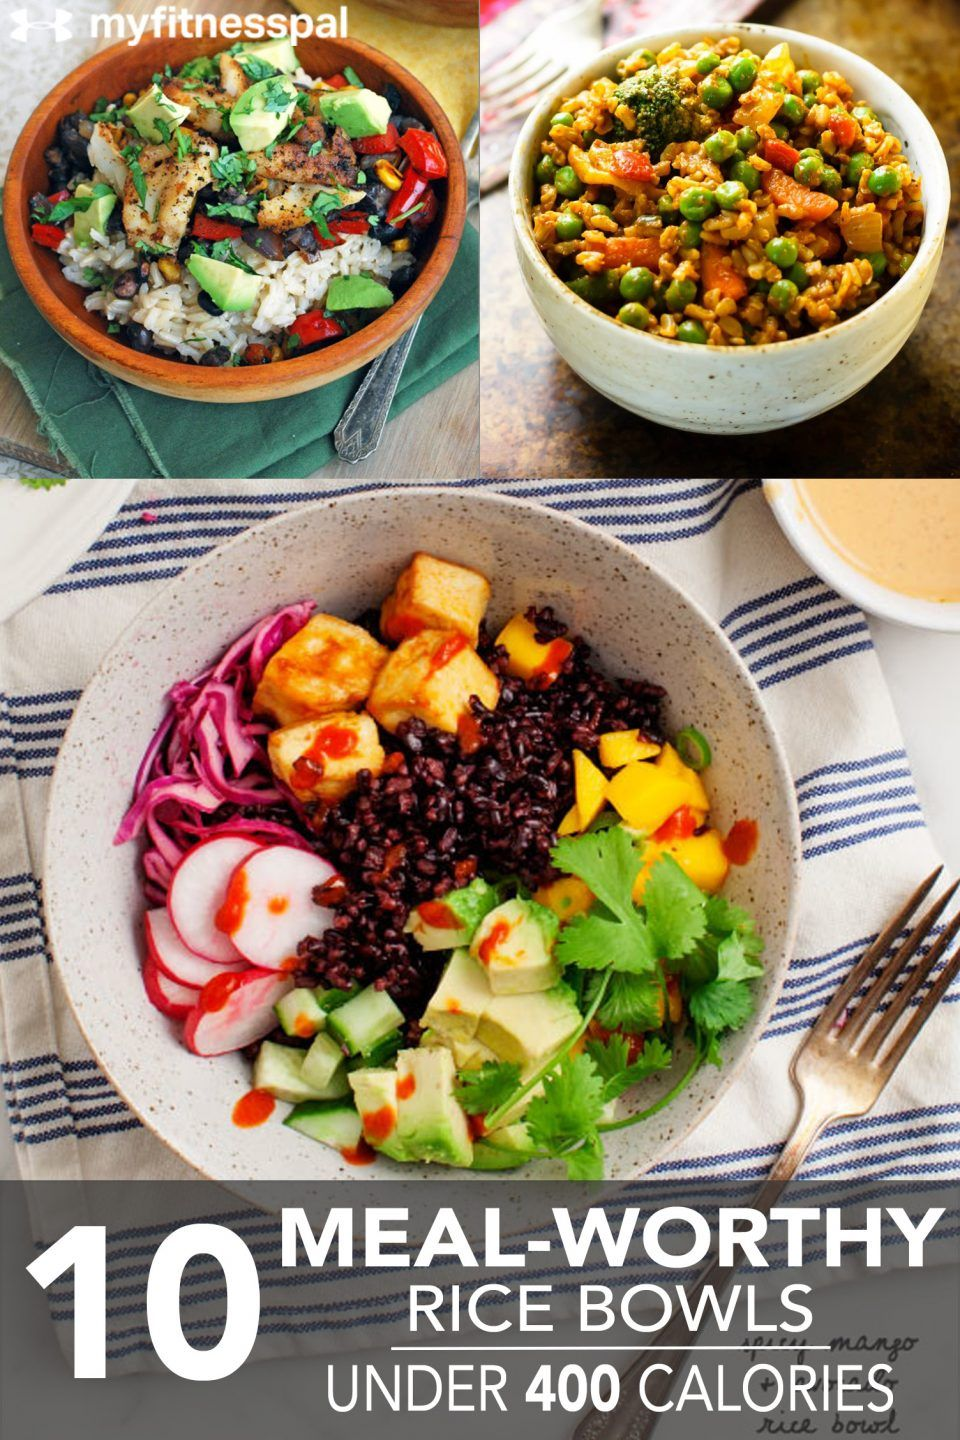 10 Meal Worthy Rice Bowls Under 400 Calories Myfitnesspal Meals Under 400 Calories Healthy Bowls Salad Recipes Under 400 Calories